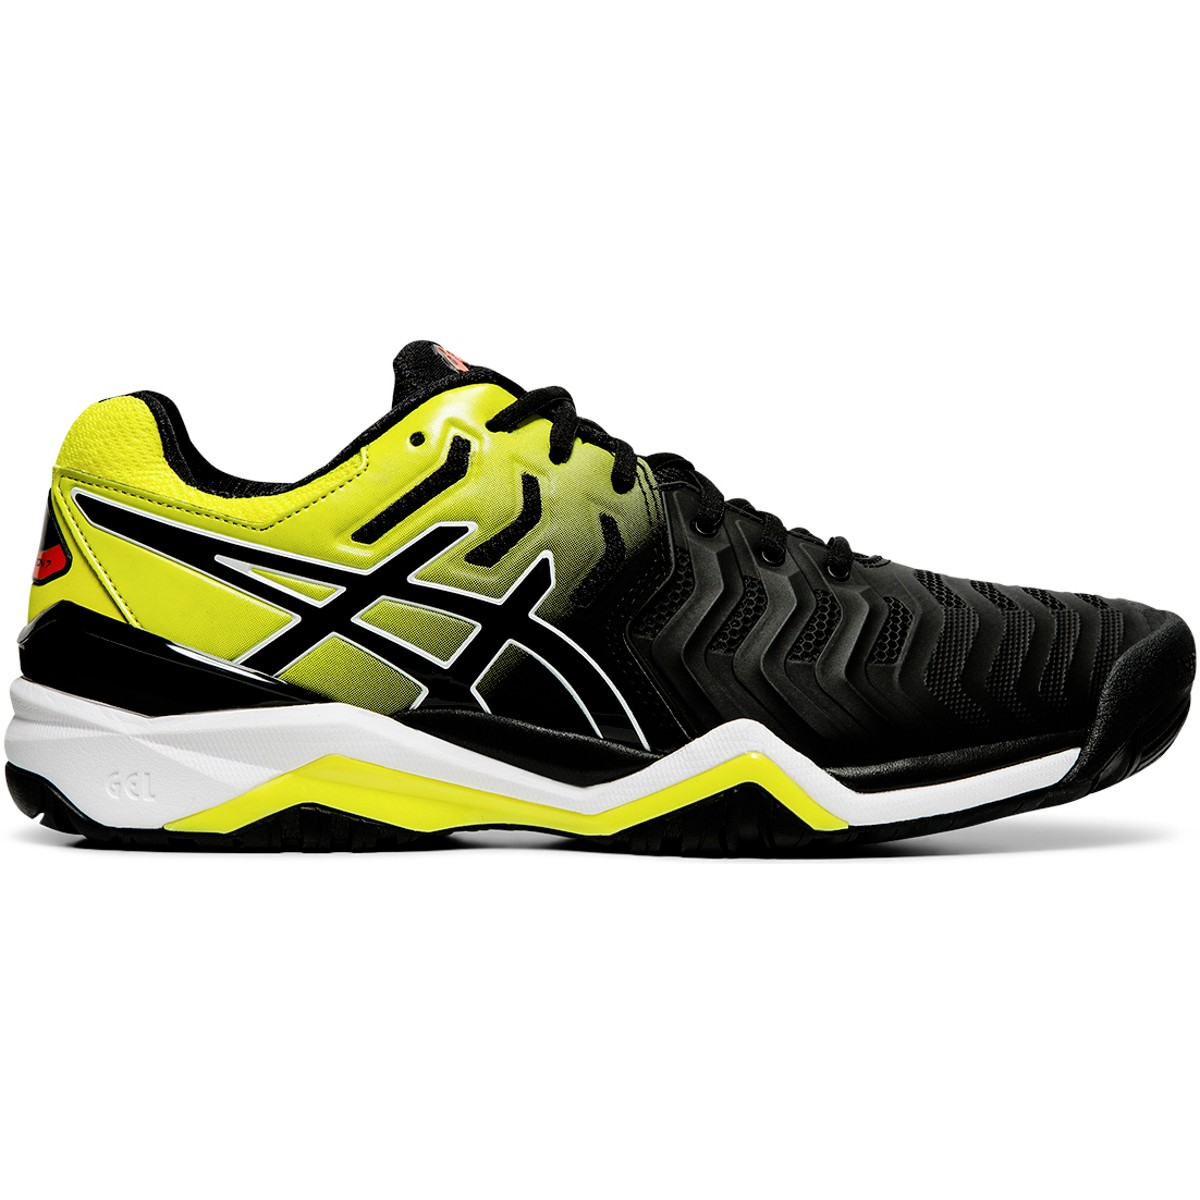 CHAUSSURES ASICS RESOLUTION 7 TOUTES SURFACES